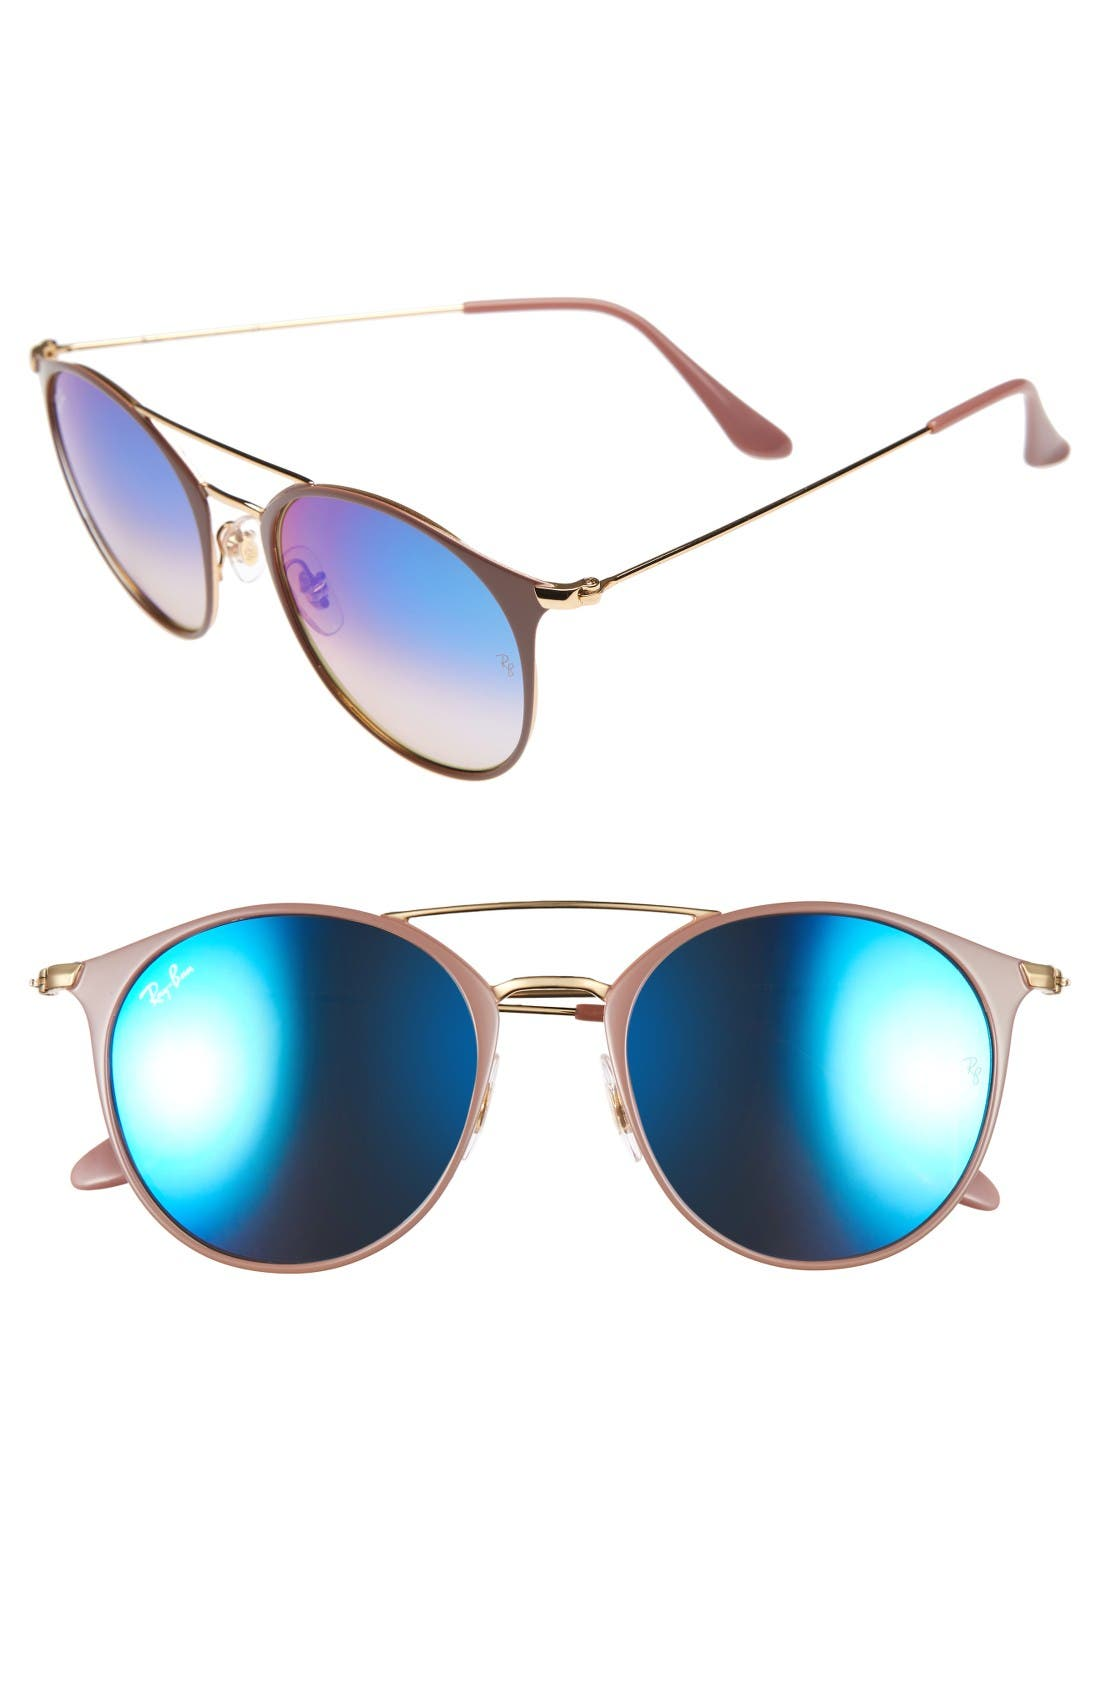 Highstreet 52mm Round Brow Bar Sunglasses,                         Main,                         color, Gold/ Beige